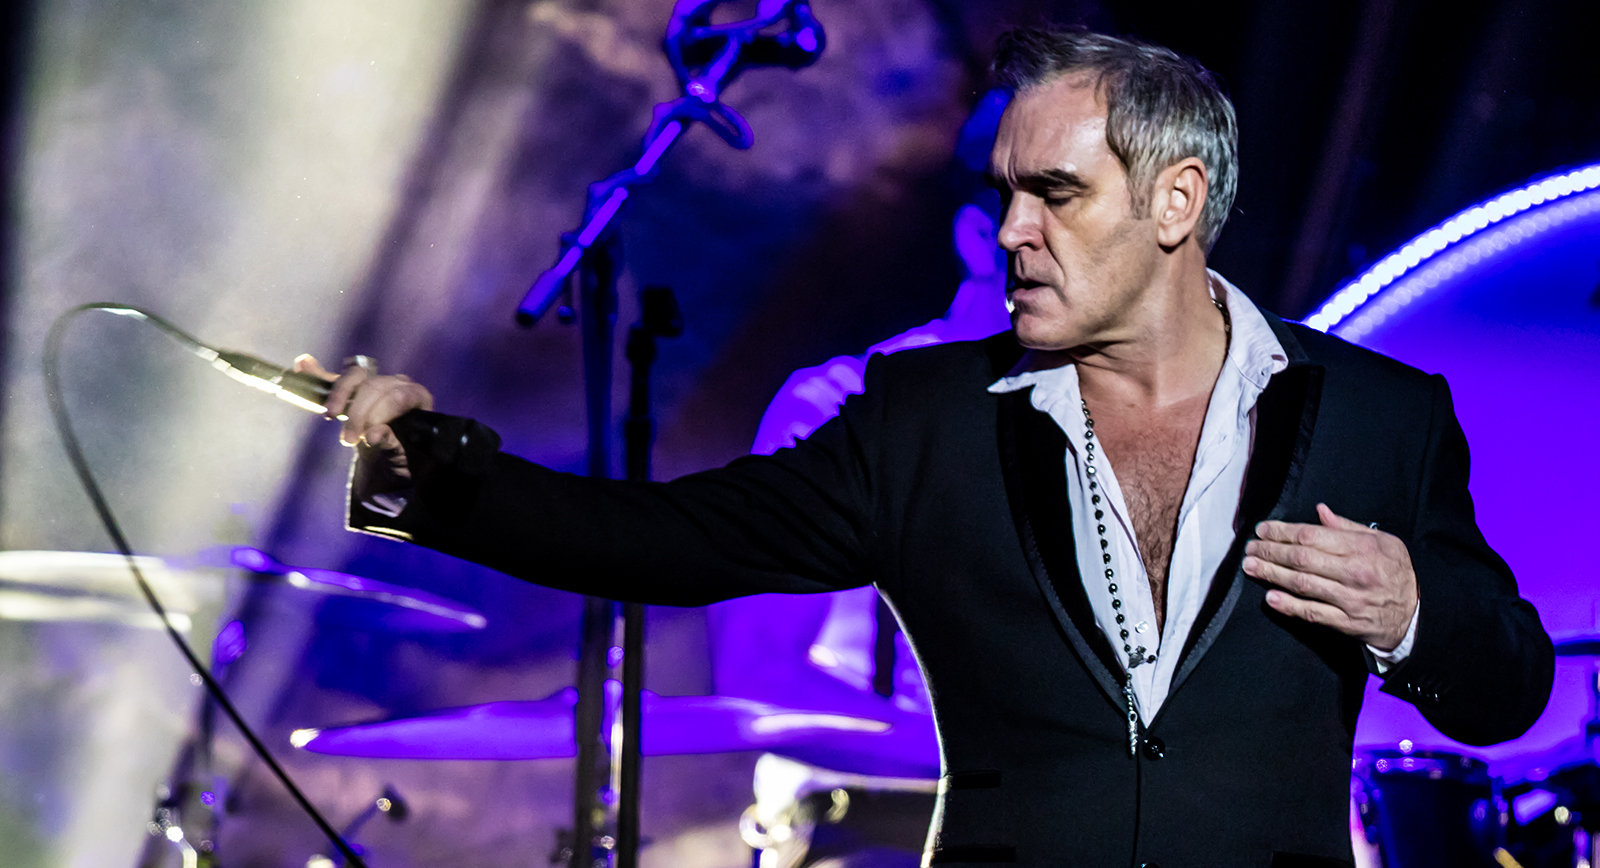 morrissey-2016-us-tour-concert-live-dates-cities-tickets-preview-fi